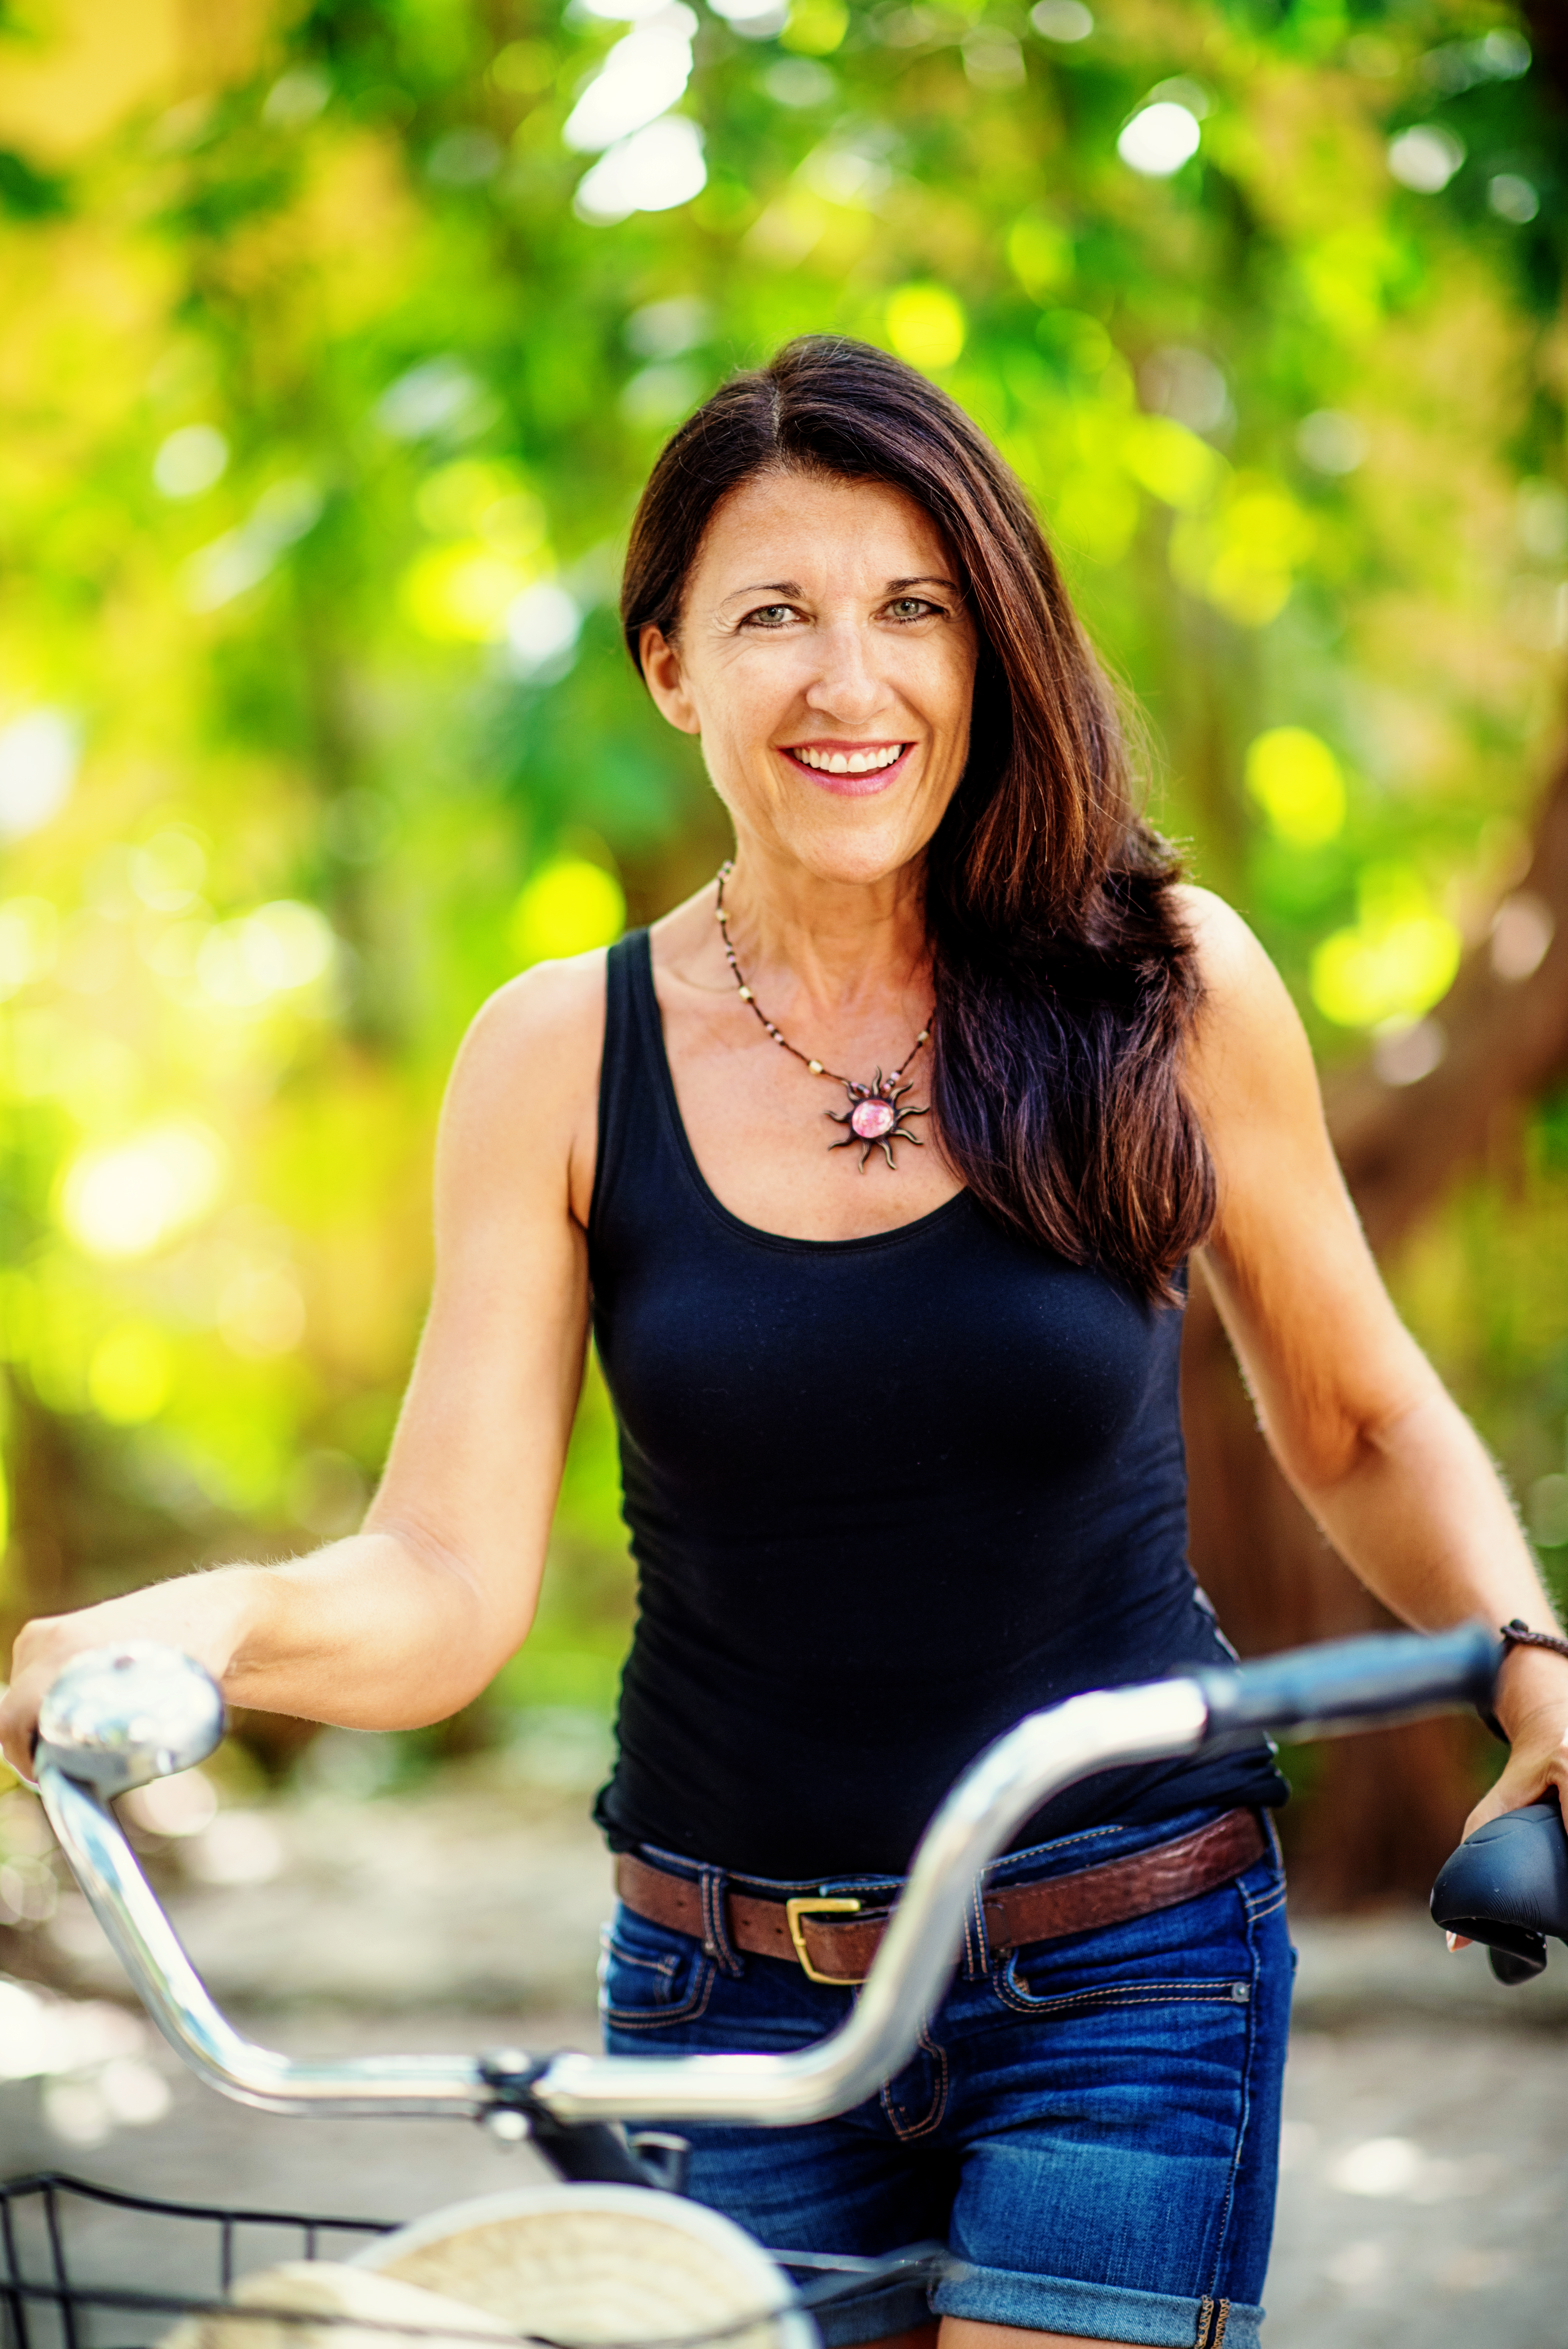 Brenda with bike 2